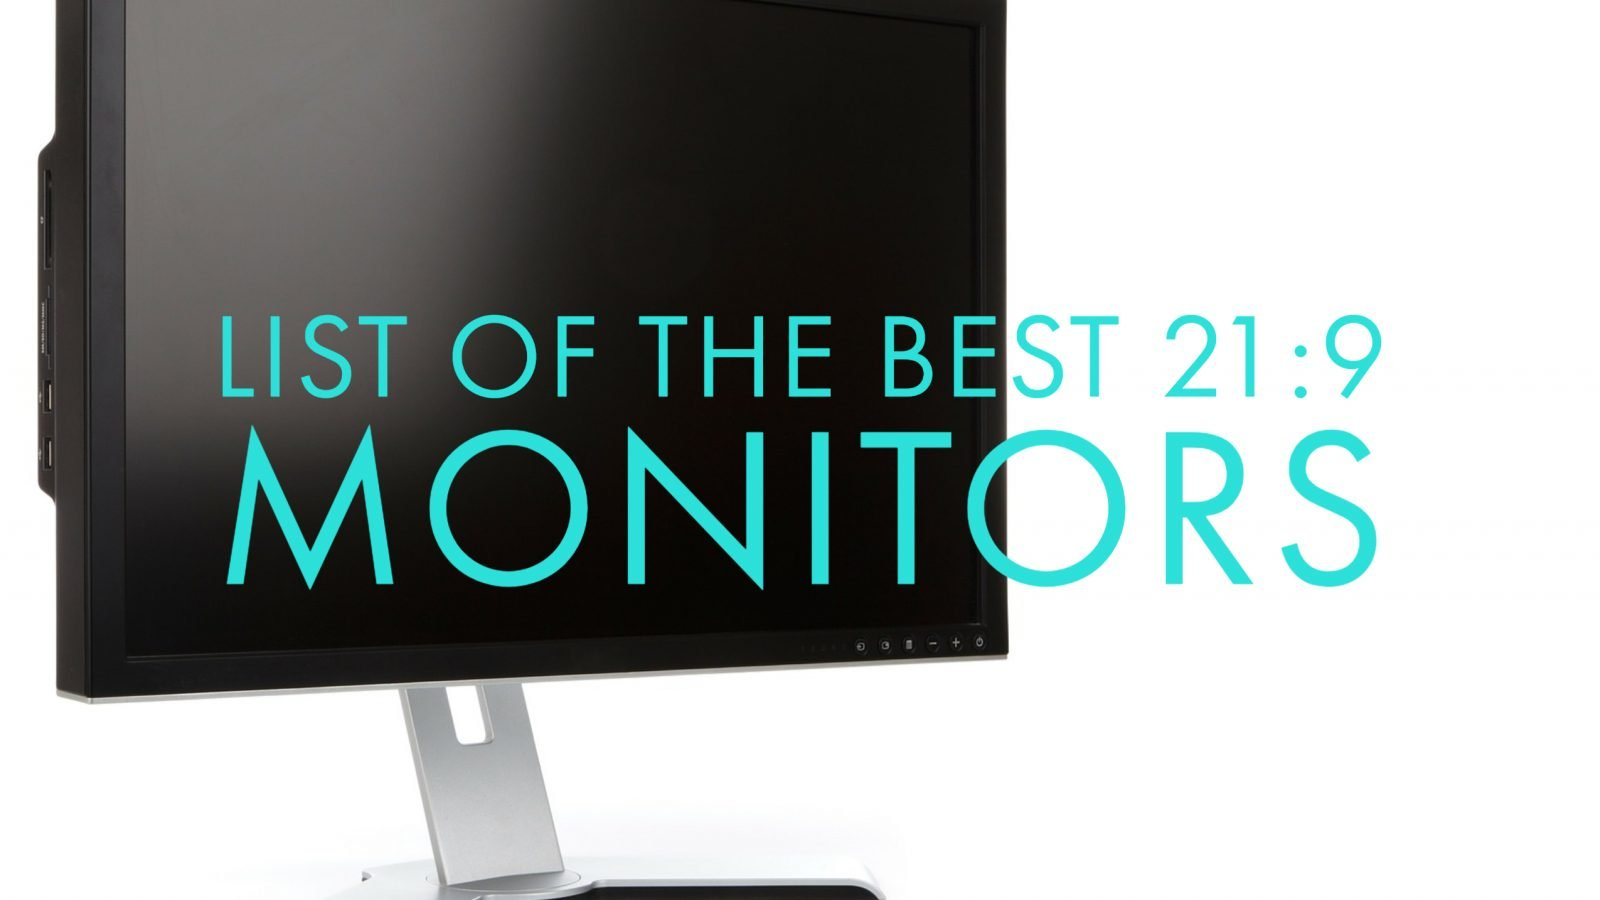 List of the Best 21:9 Monitors